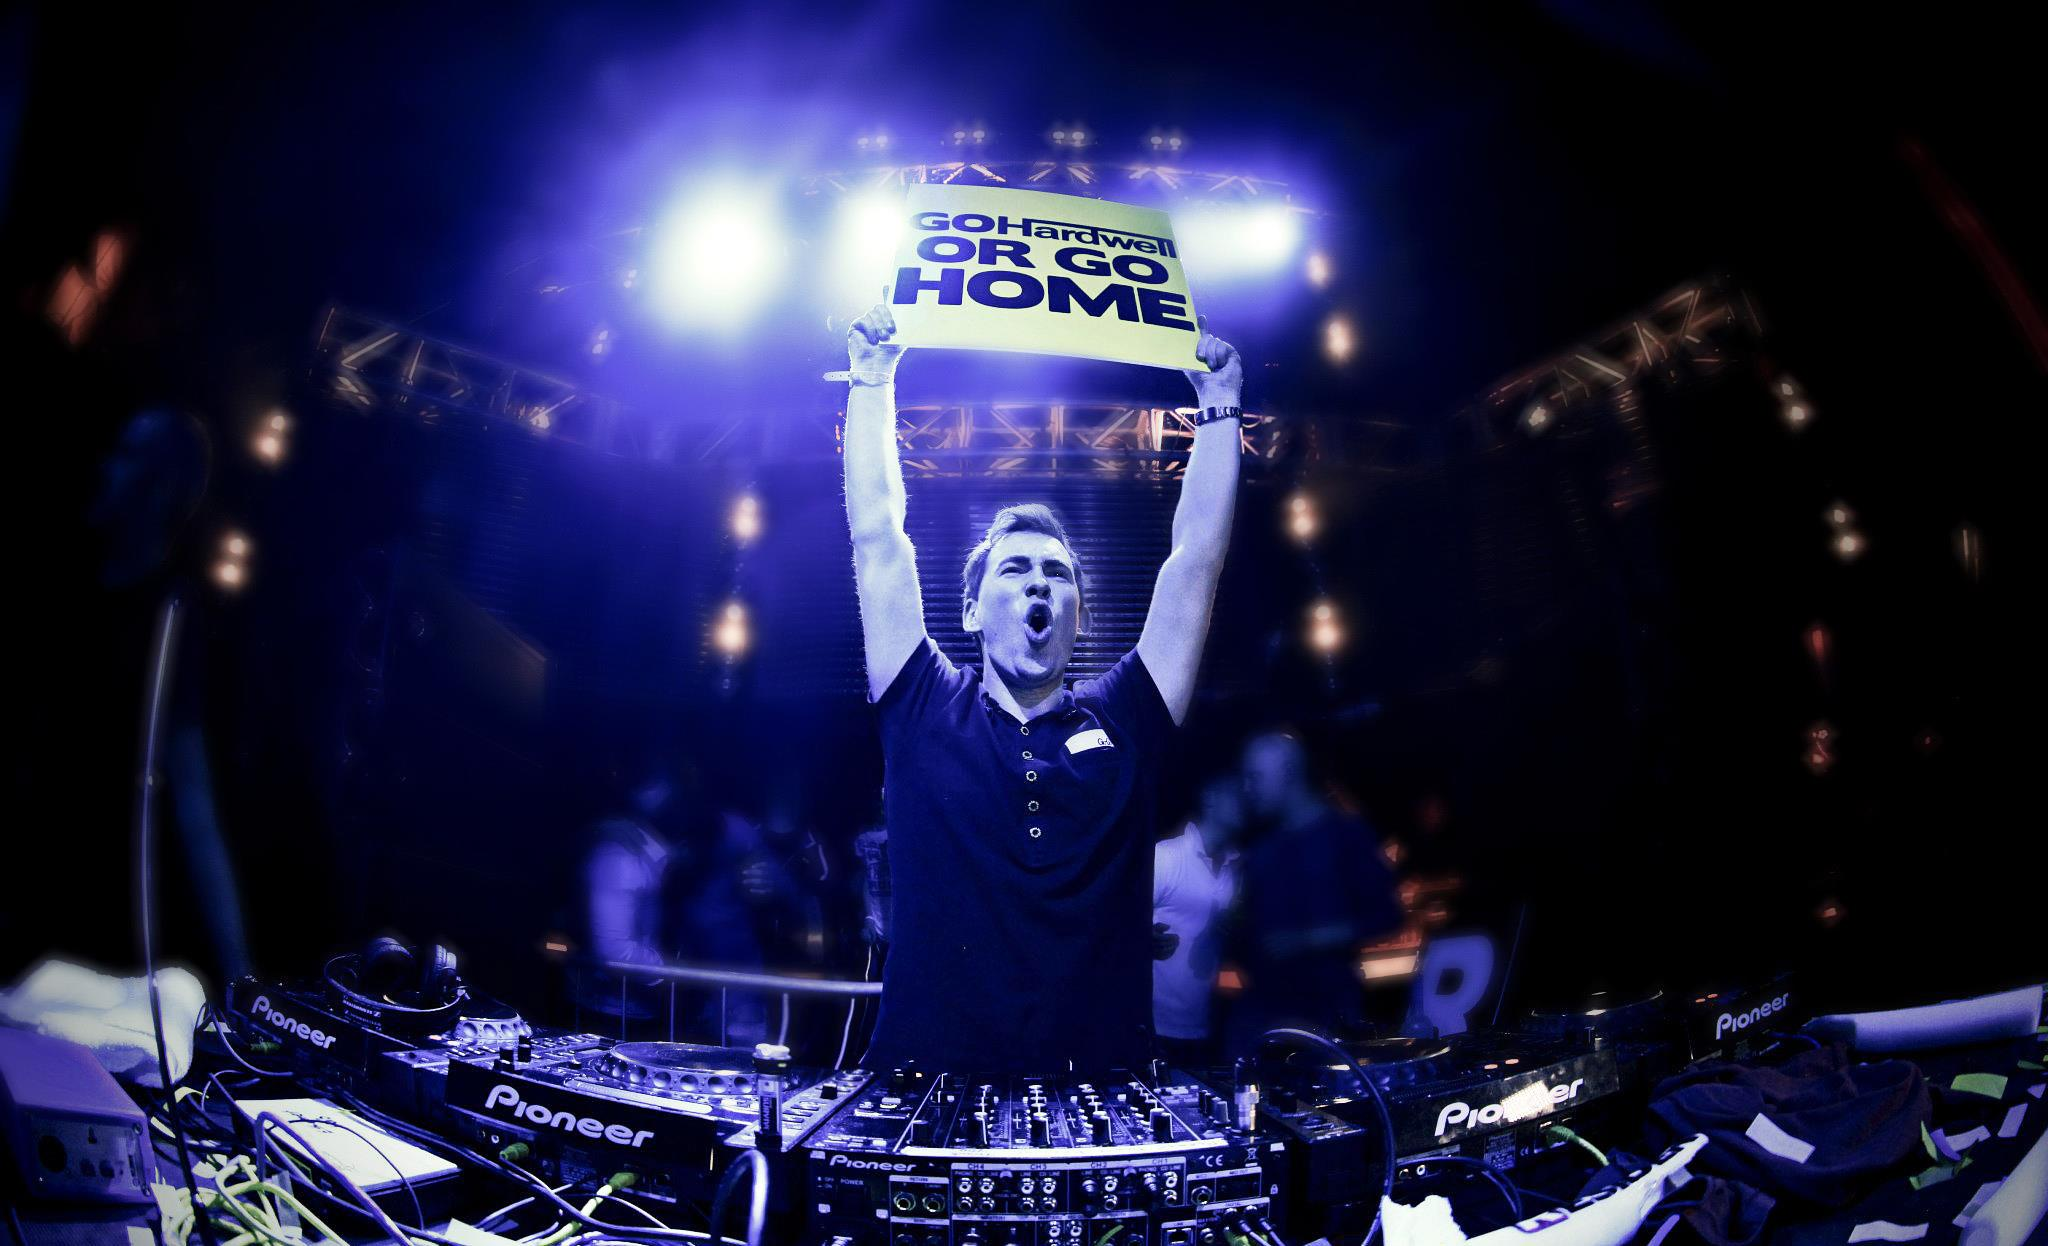 And the 1 dj in the world is streamkat hardwell altavistaventures Image collections